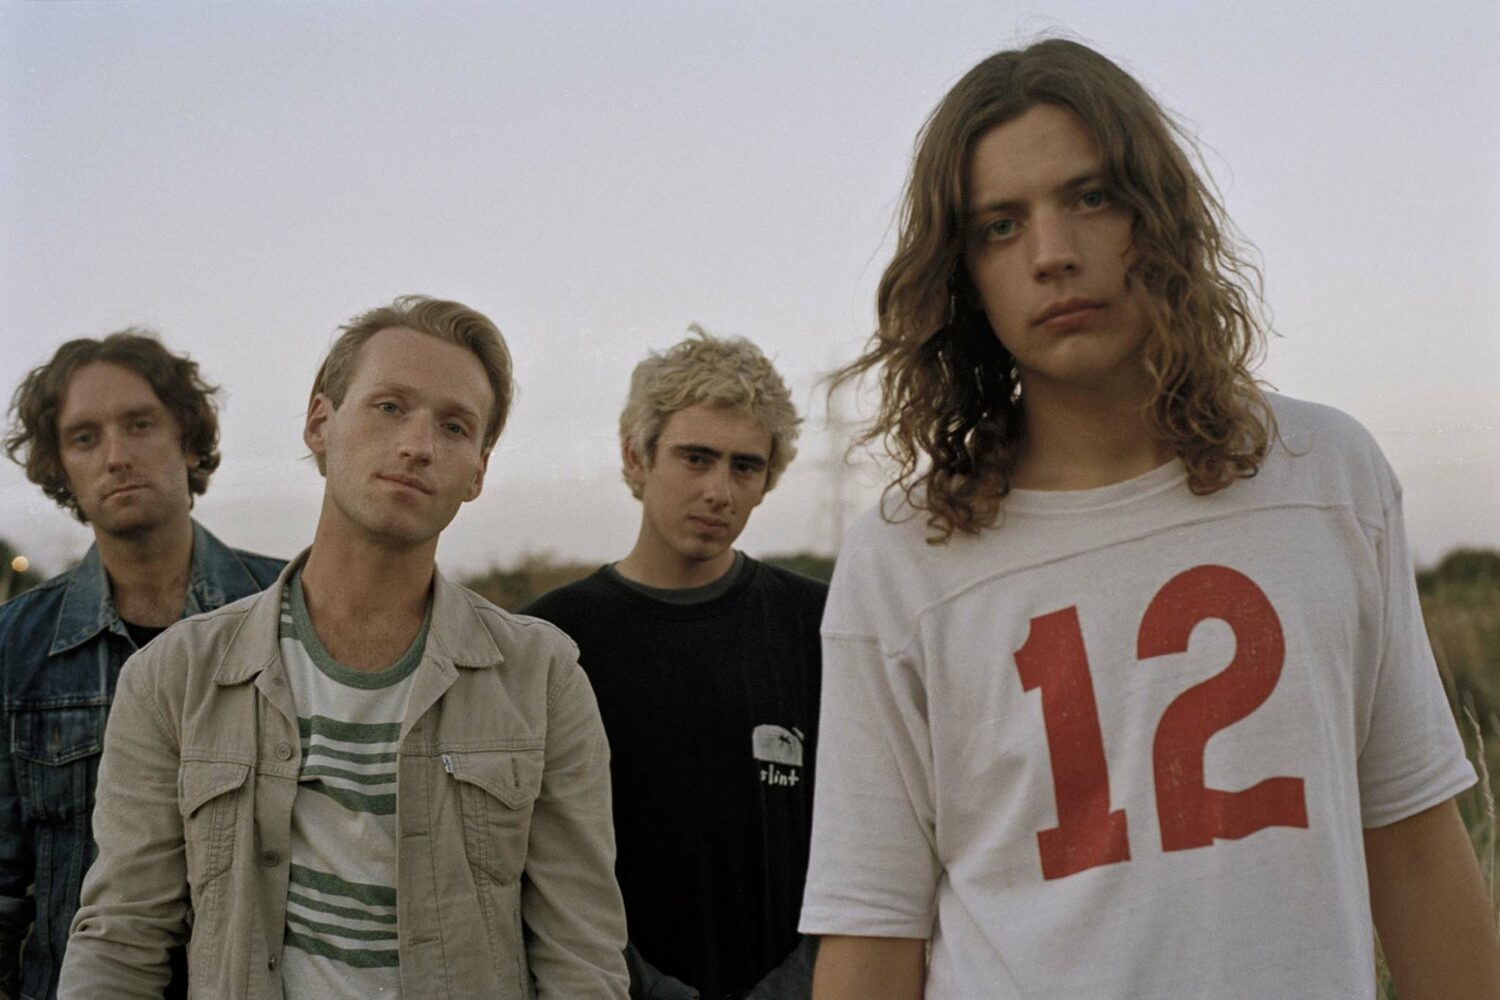 Win tickets to see VANT play the Stand For Something Tour